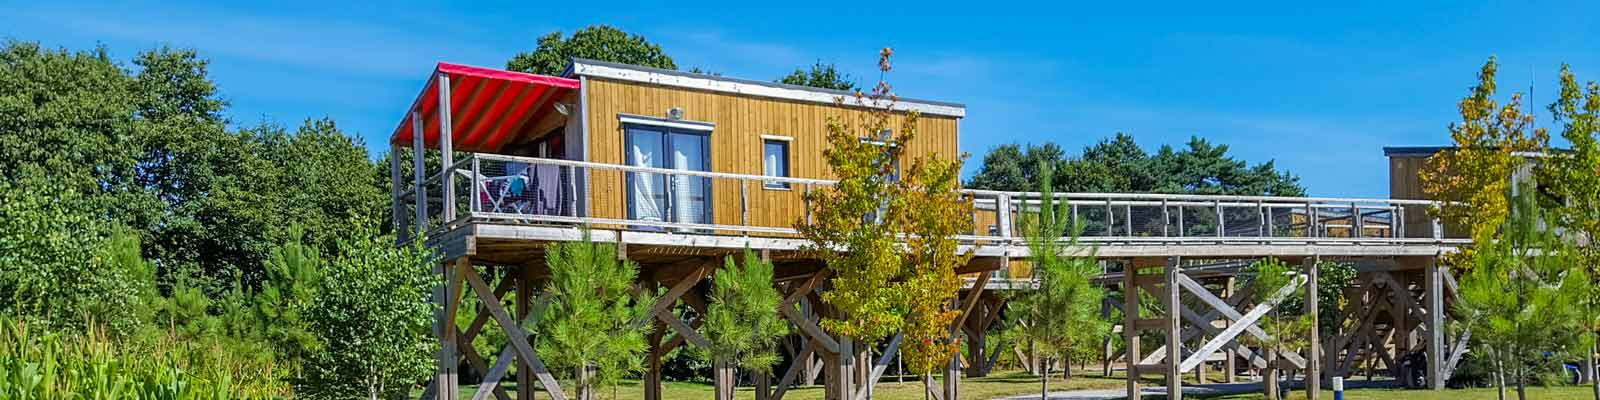 location cottage pilotis camping morbihan